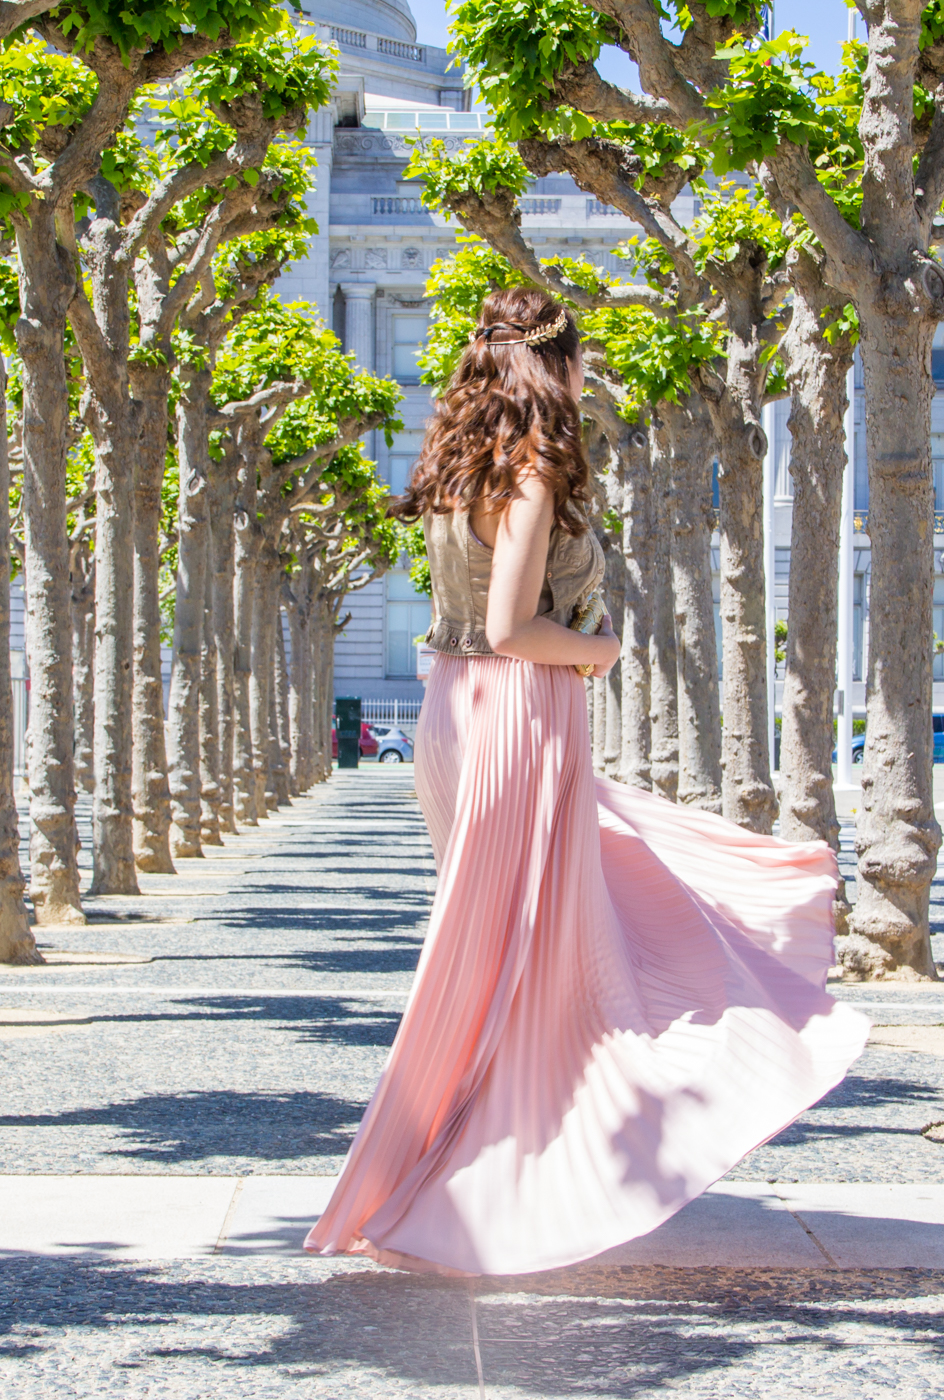 Twirling in a flowy pink maxi skirt | via The Chic Diary